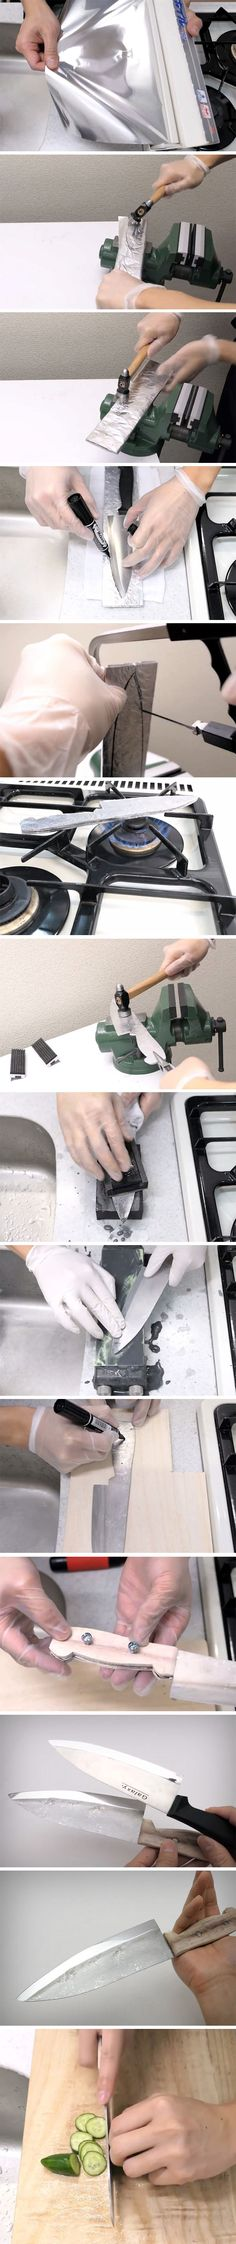 Youtuber Kiwami Japan looked at his roll of aluminum foil as not really a finished product but rather as a source of raw material. Doing something rather remarkable, he turned the foil back into a 4mm thick sheet of aluminum… and then carved a rather sharp and useful kitchen knife out of it.